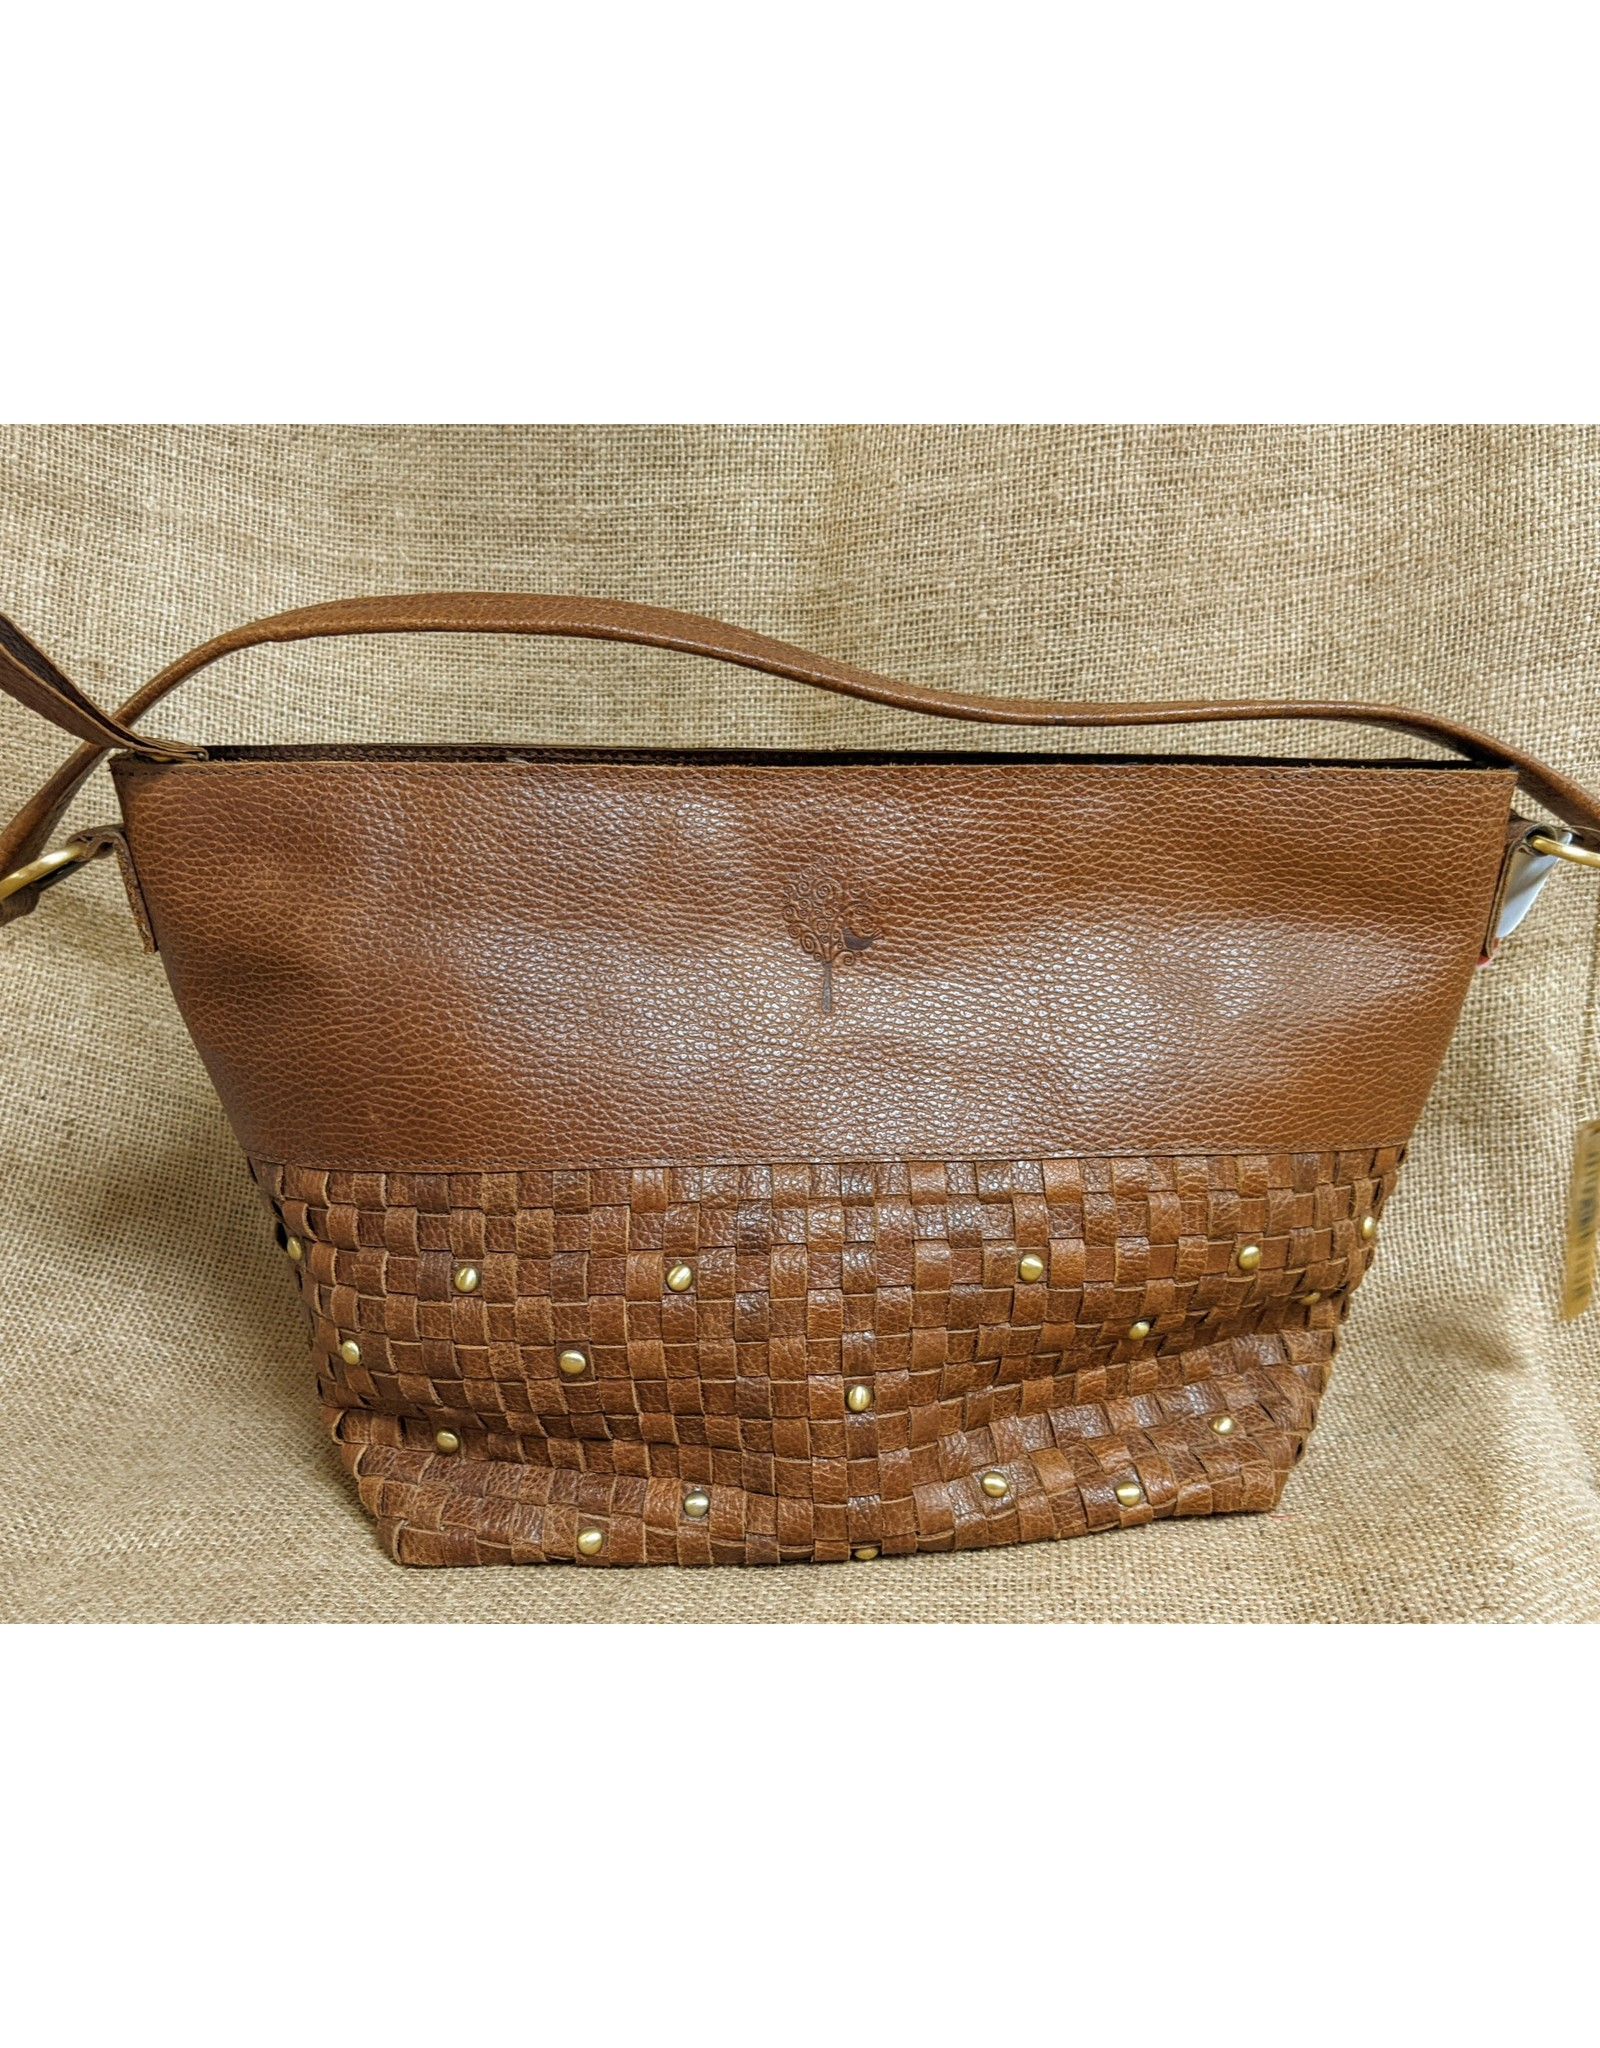 Ten Thousand Villages CLEARANCE  Basketweave Eco Leather Purse, India